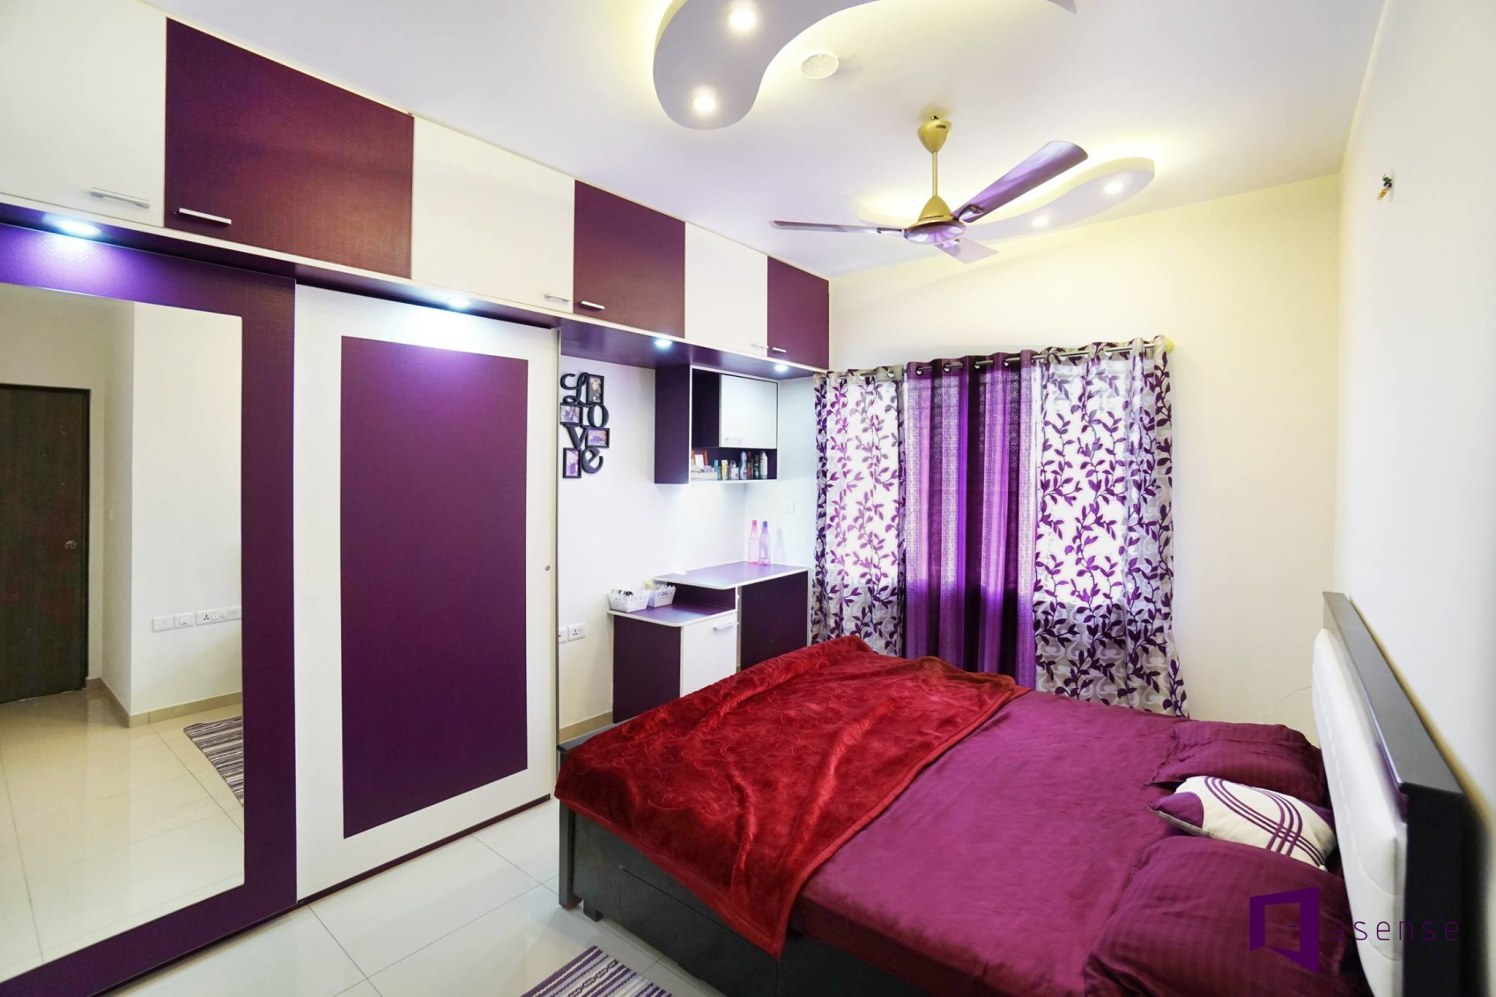 Purple And White Themed Bedroom With Wooden Bed by Snigdha Ghosh Bedroom Contemporary | Interior Design Photos & Ideas